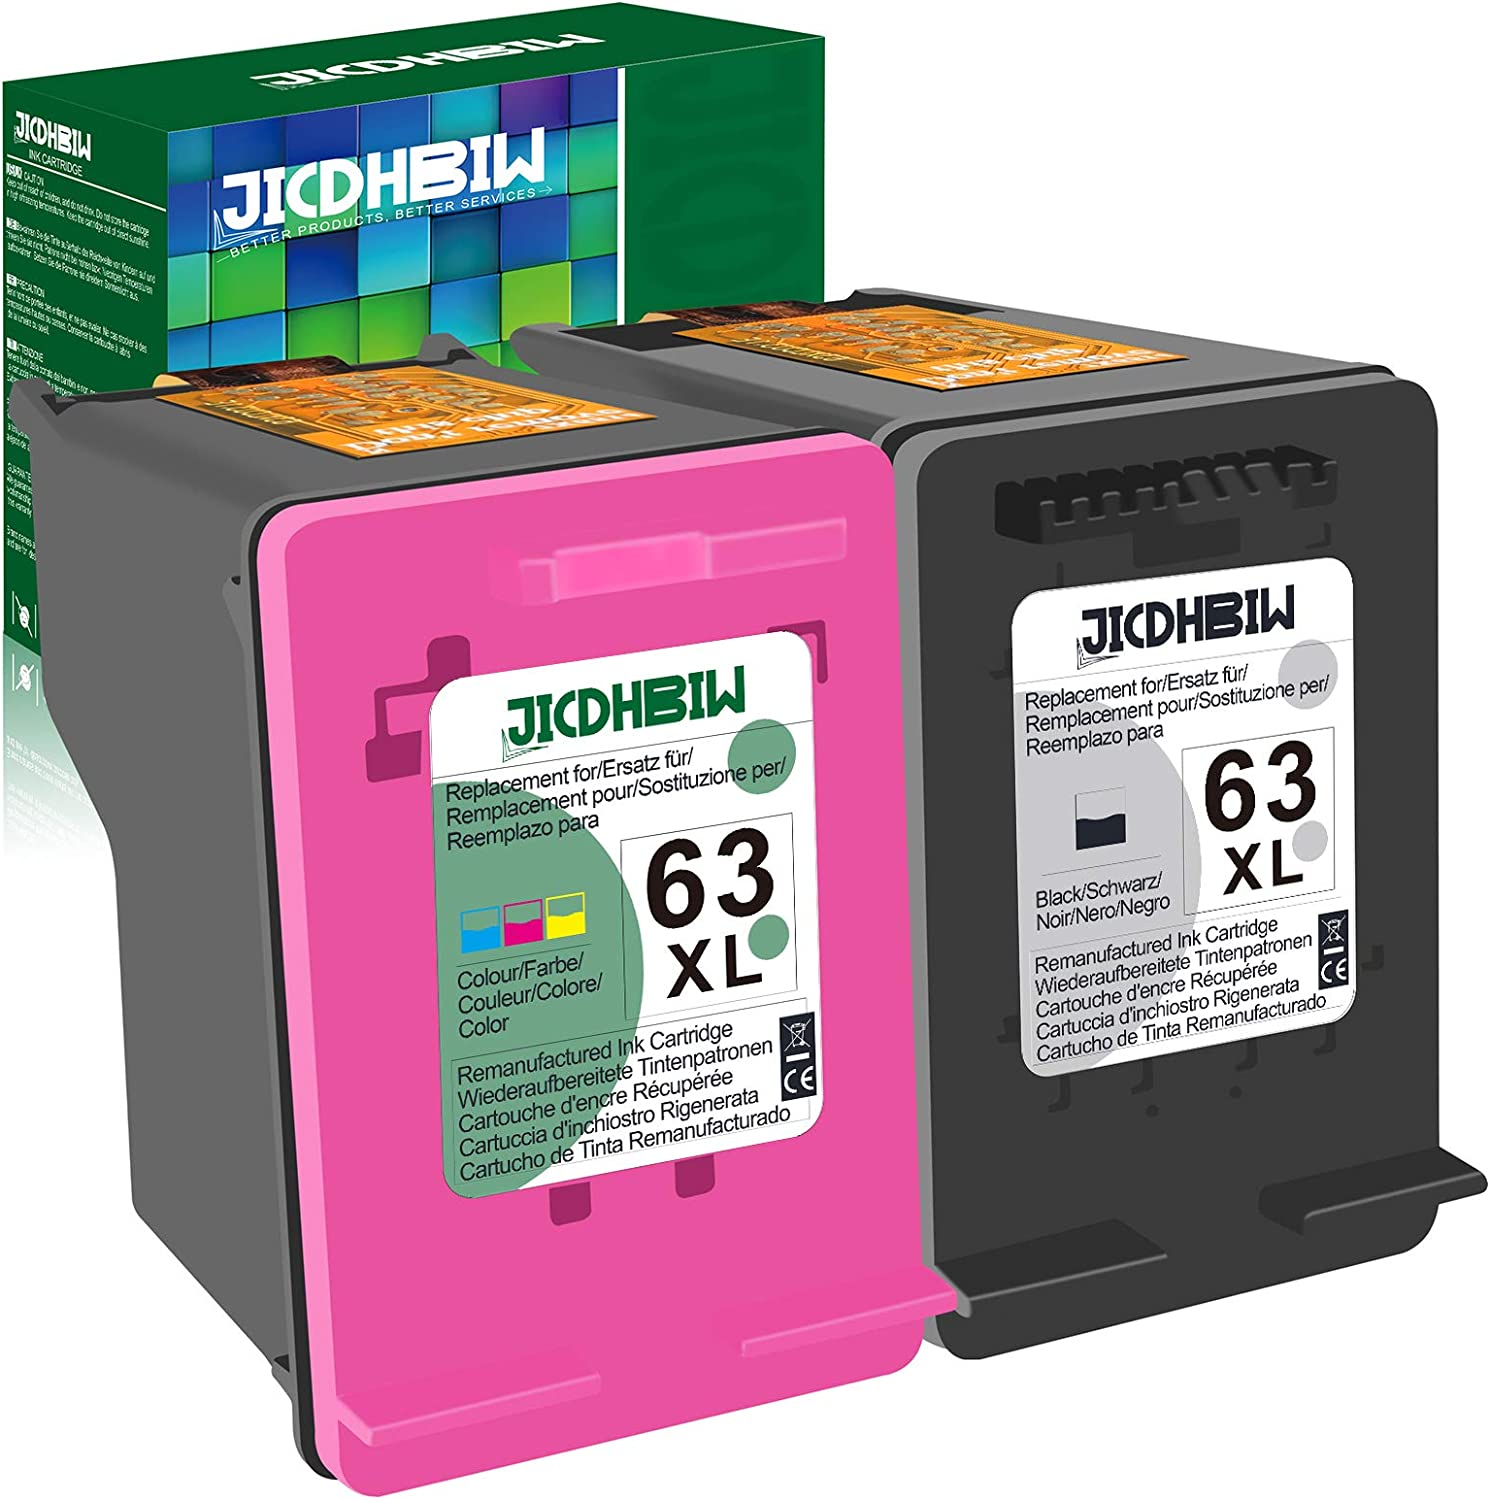 JICDHBIW Remanufactured Ink Cartridge Replacement for HP 63XL 63 XL Black Tri-Color (2 Pack), Work with Envy 4520 3634 OfficeJet 3830 5252 4650 5258 4655 4652 5255 DeskJet 3636 1111 3630 1112 Printer